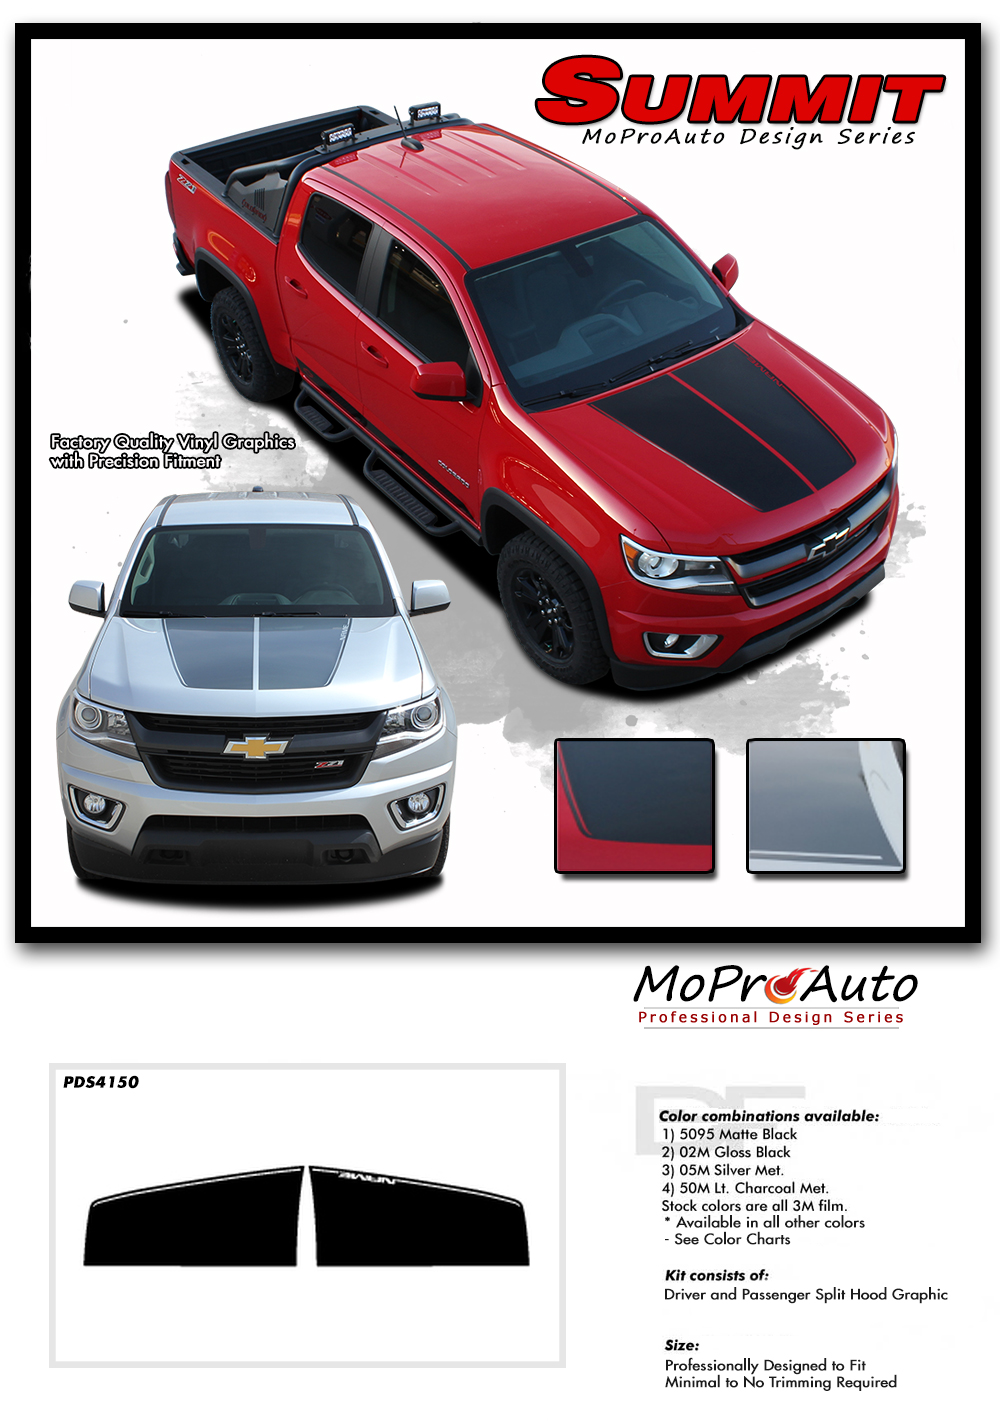 2015 2016 2017 2018 2019 CHEVY COLORADO - MoProAuto Pro Design Series Vinyl Graphics, Stripes and Decals Kit